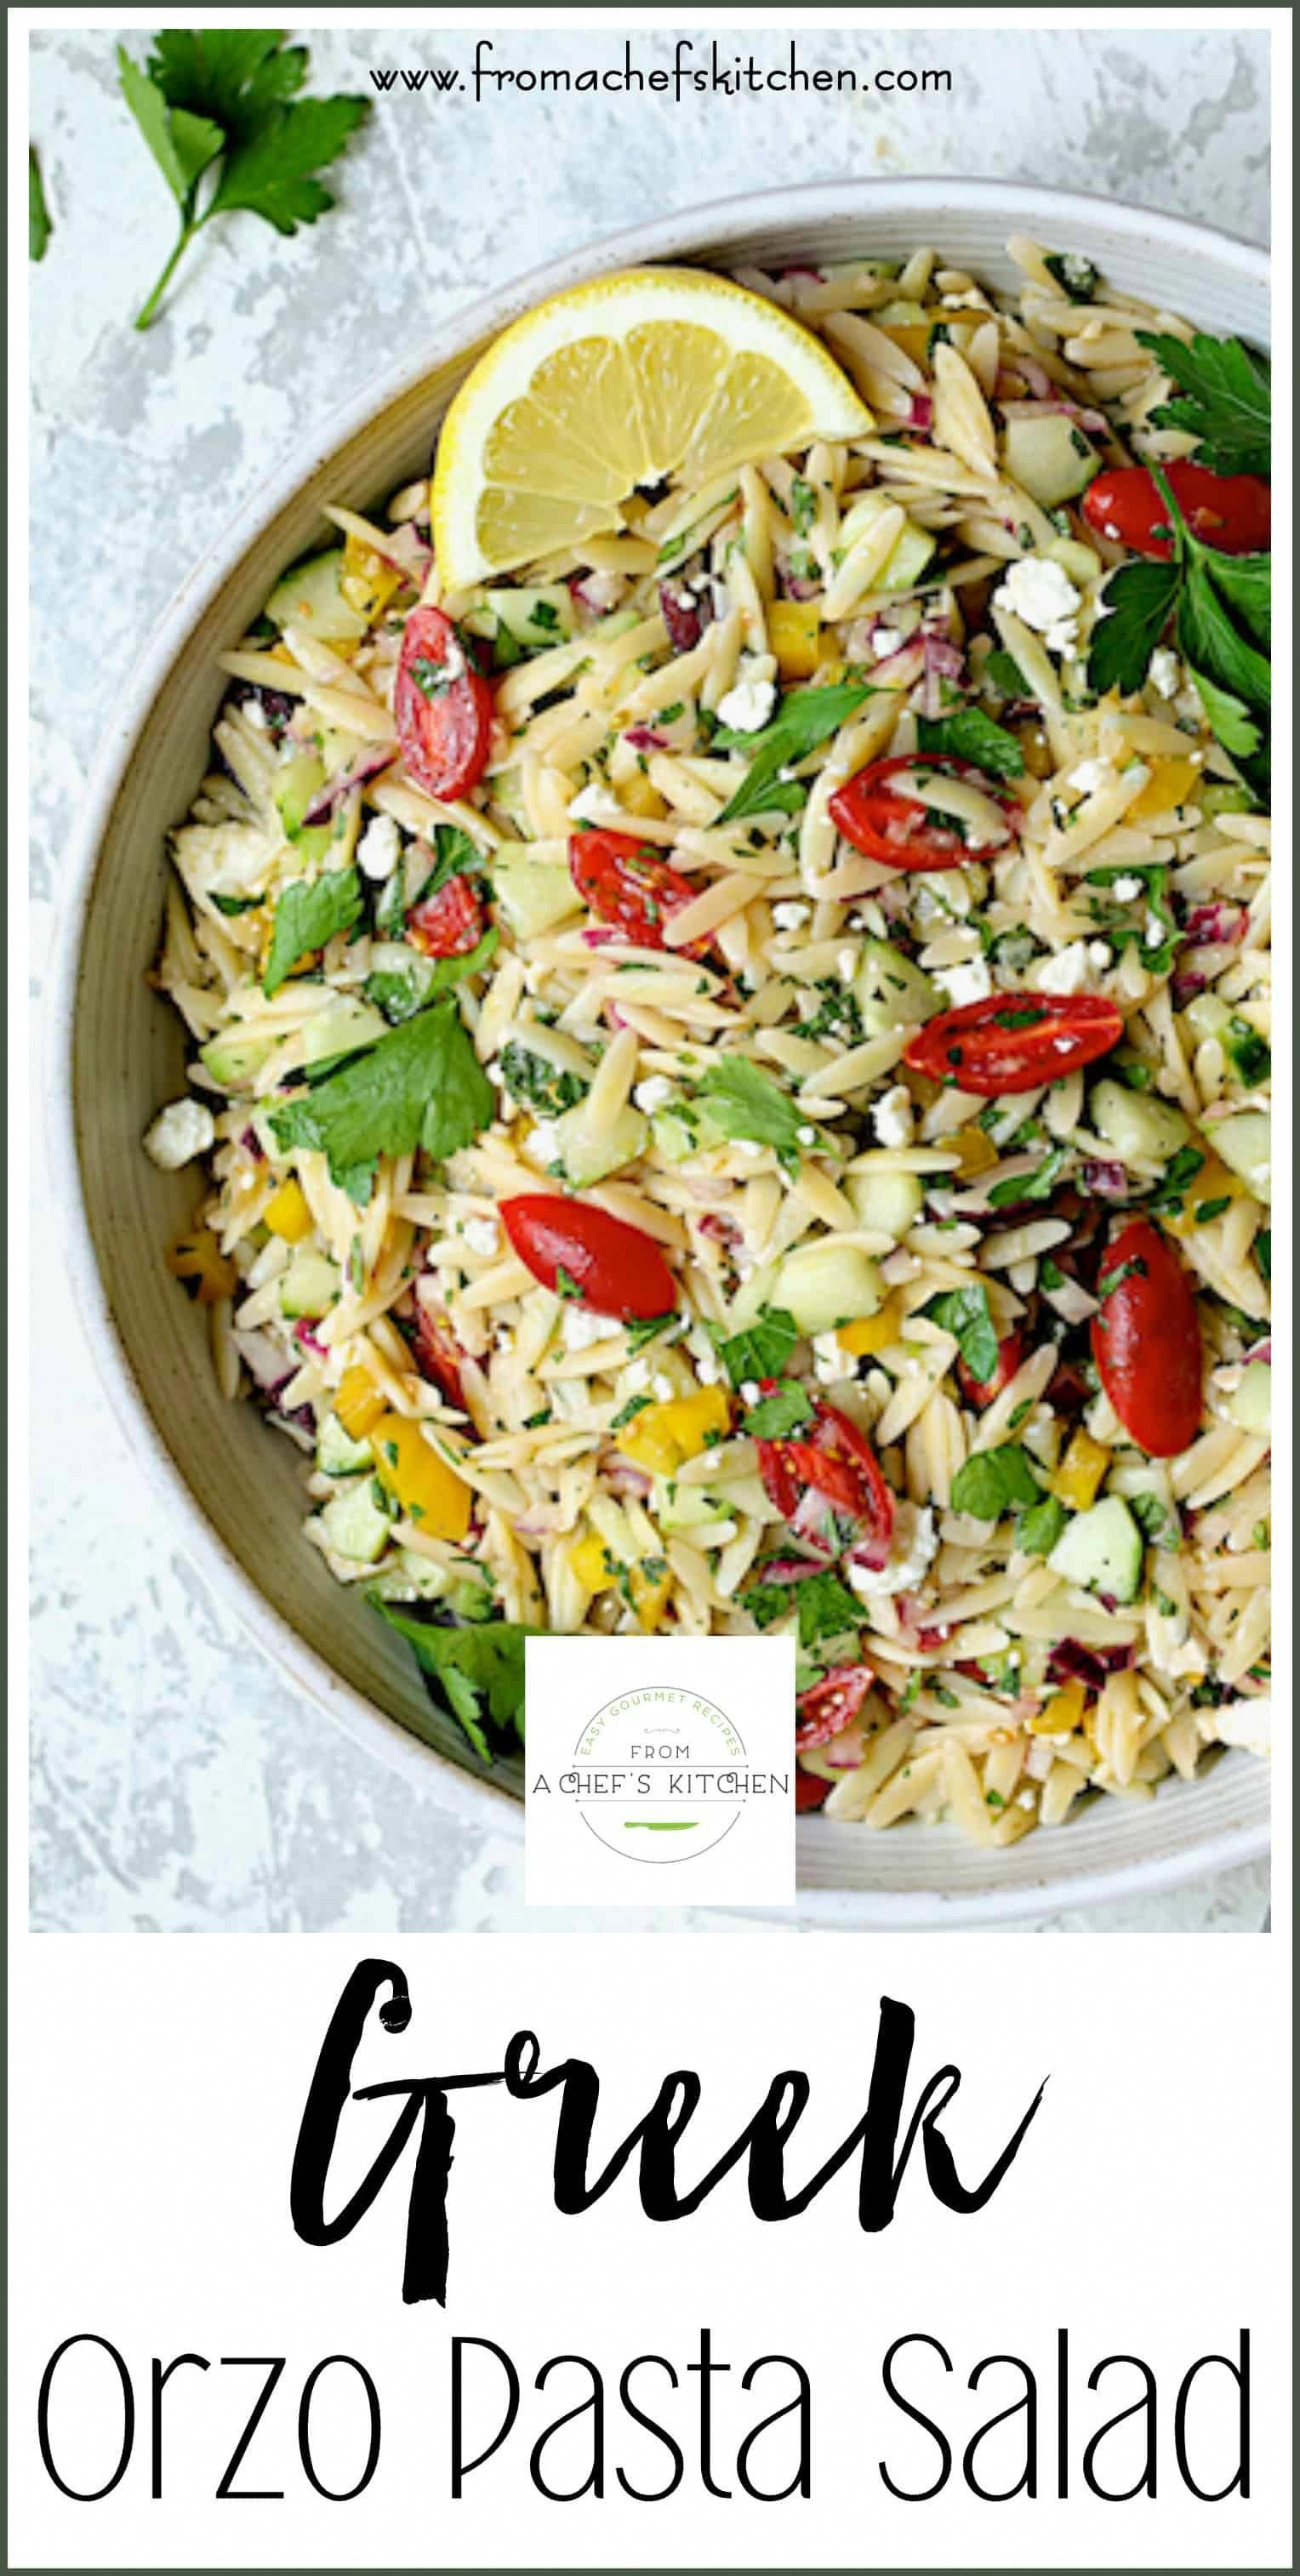 Greek Orzo Pasta Salad is full of fresh, crunchy vegetables and bright, summery flavors! It's the perfect crowd-pleasing salad to take to your summer get-together.